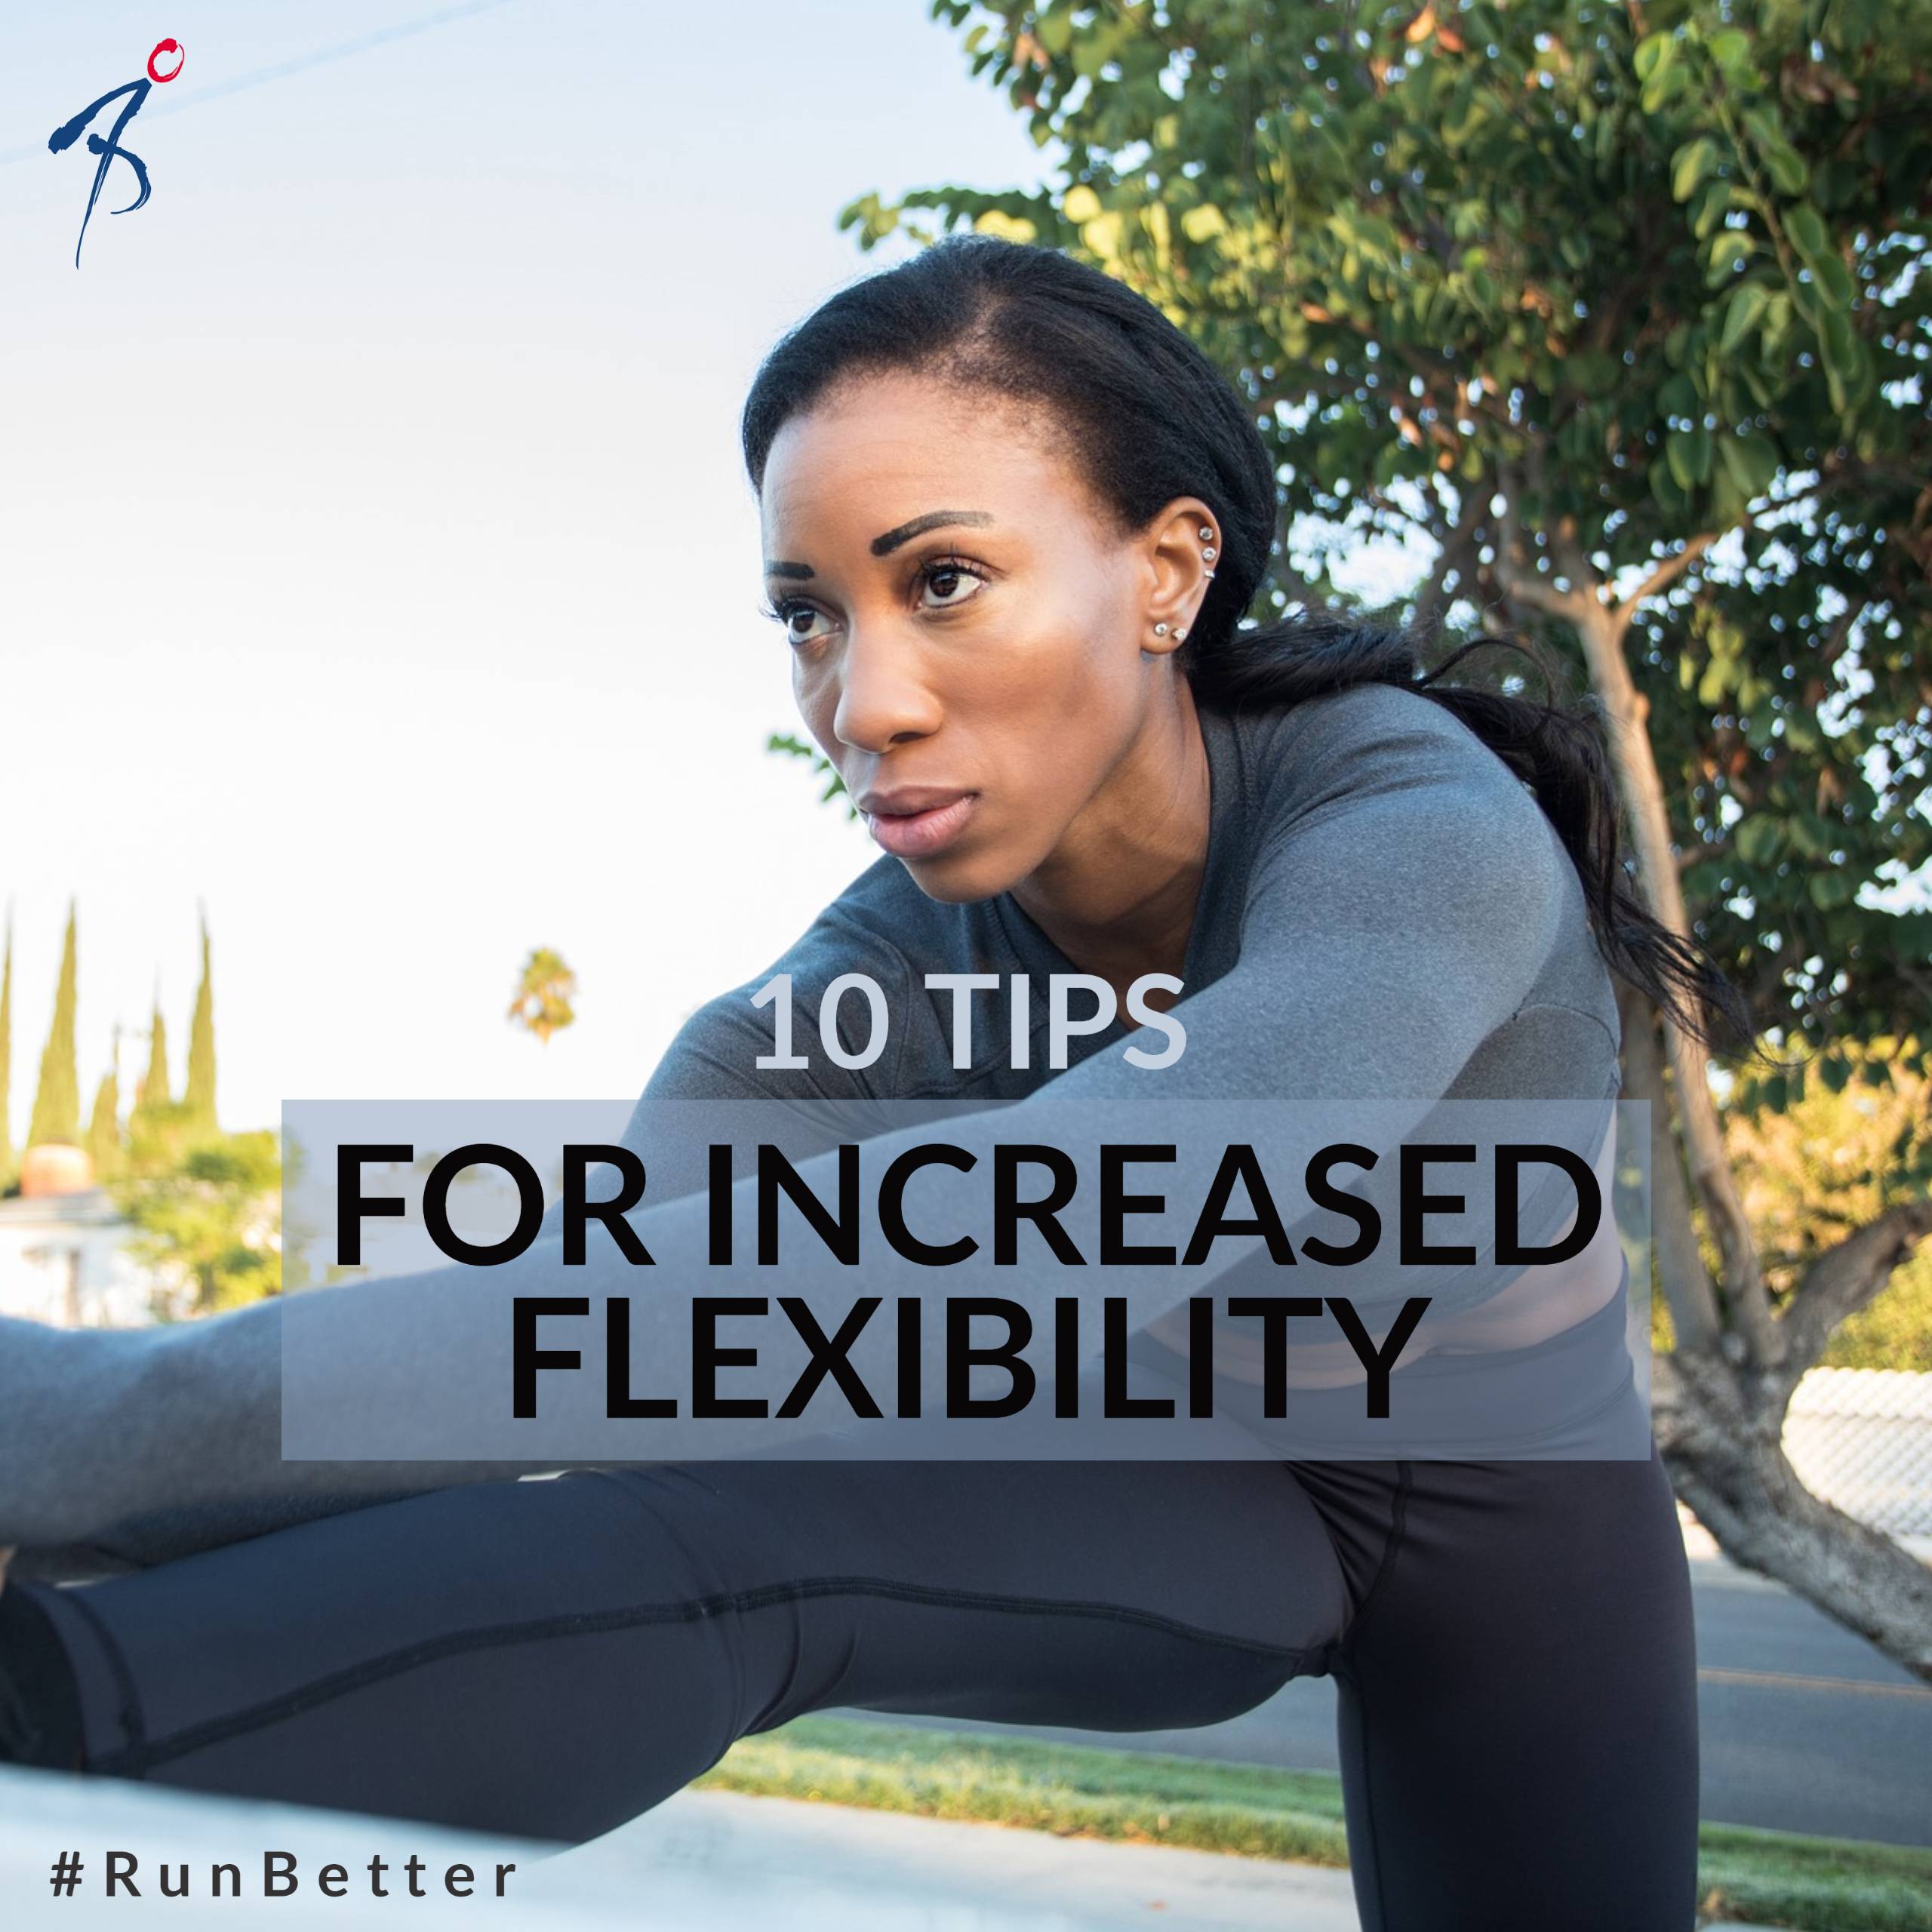 10 tips for increased flexibility